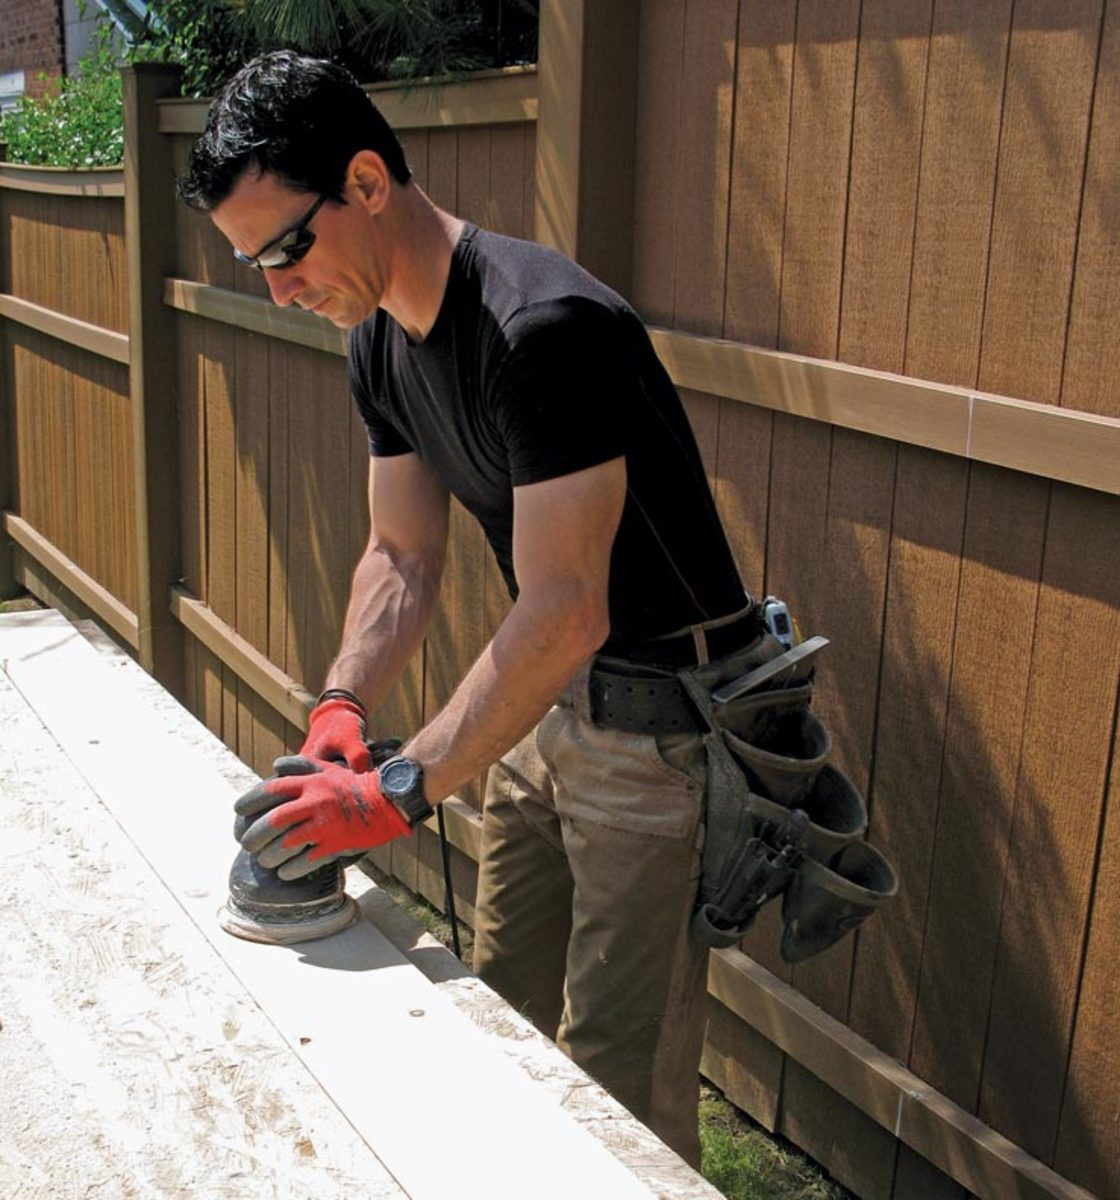 Staining Hardwood Floors This Old House Of 5 Best Sanders for Old House Projects Restoration Design for the within Powerful with A Gentle touch the Right Angle Random orbit Sander is the Go